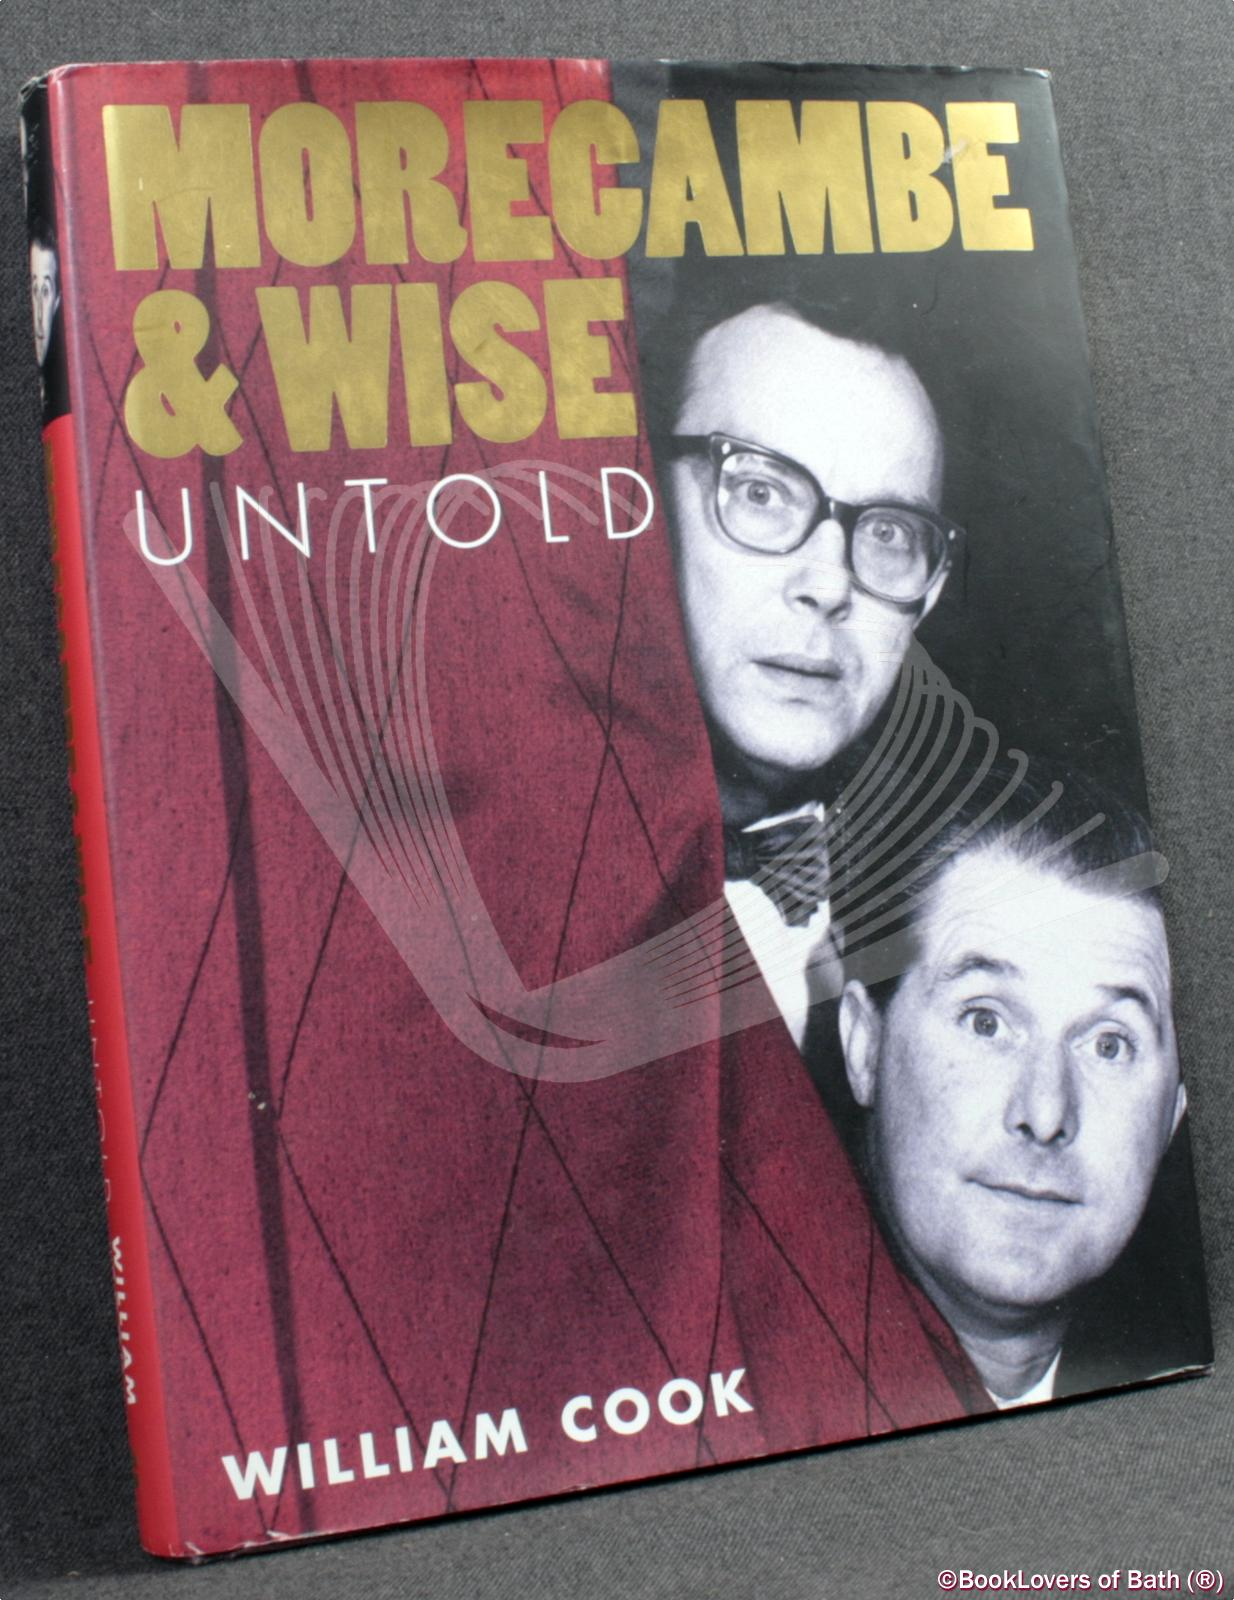 Morecambe and Wise Untold - William Cook